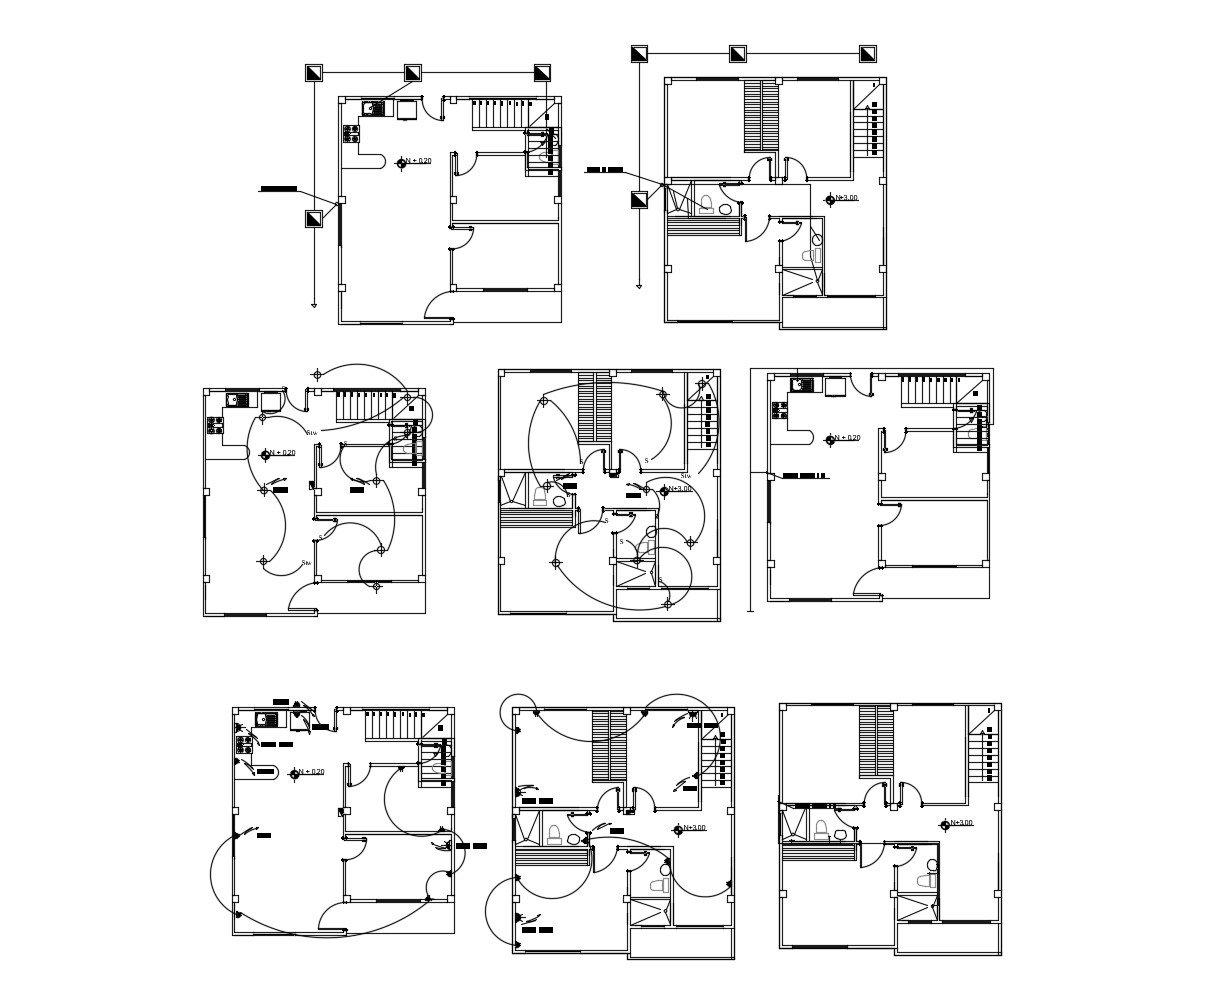 Electric layout plan of house with detail dimension in dwg file